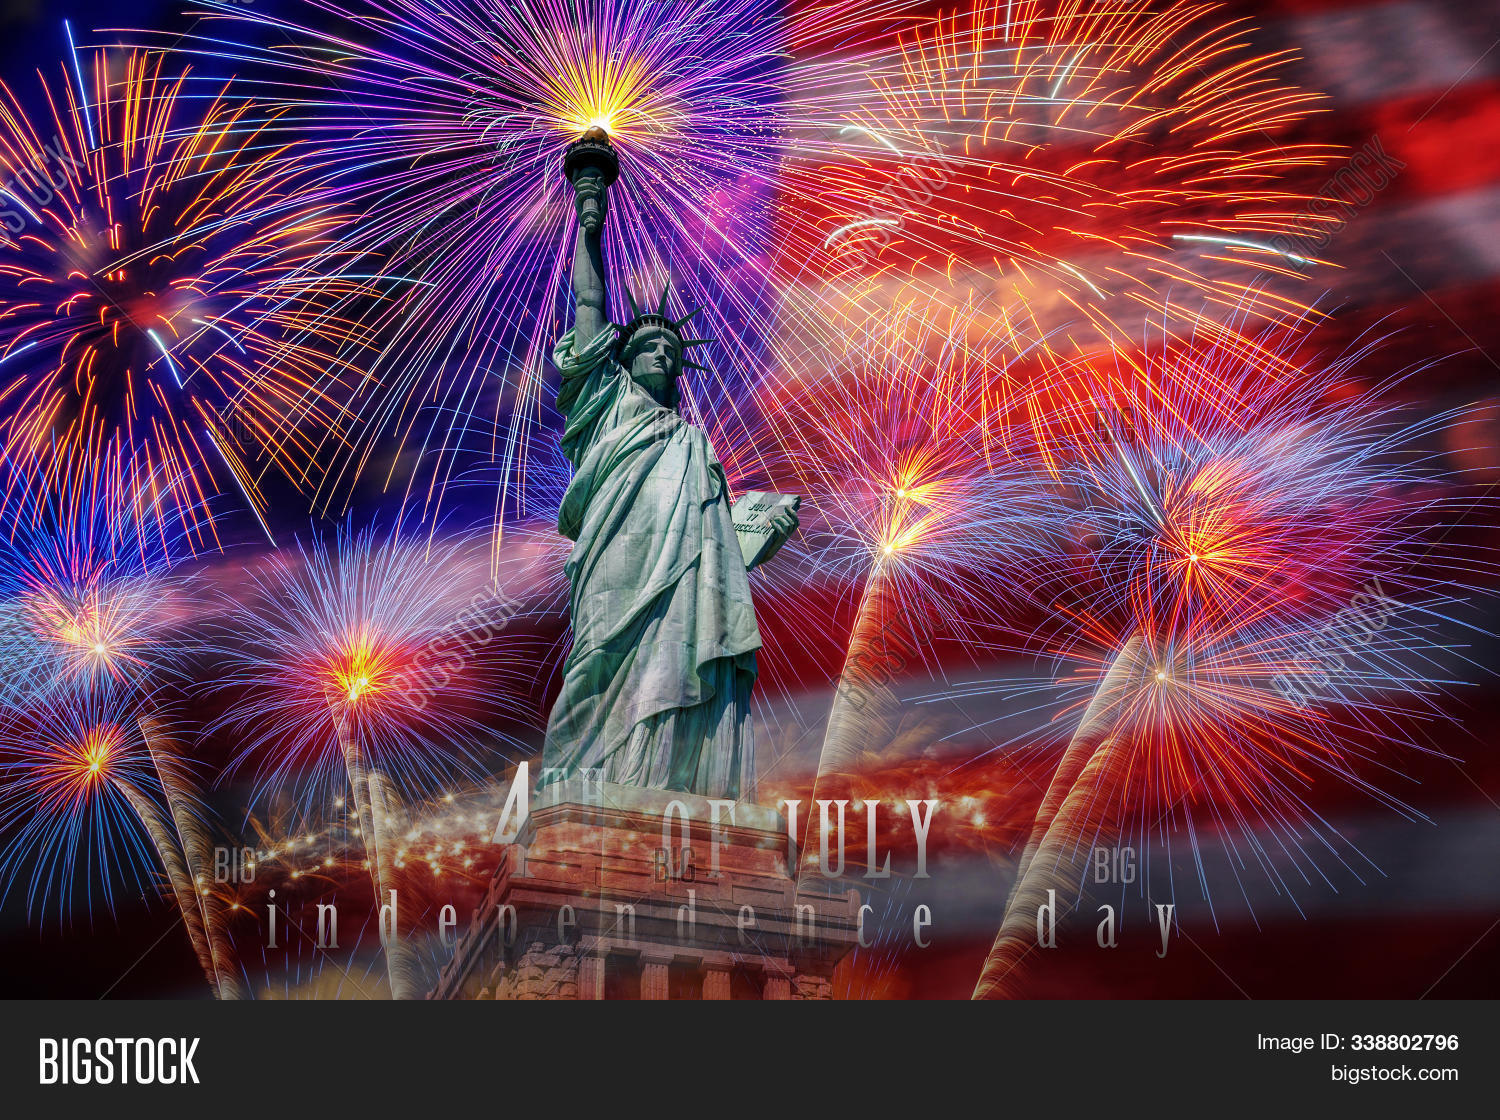 2019,2020,3d,4,4th,Christmas,abstract,america,american,anniversary,backdrop,background,brooklyn,celebration,city,color,concept,creative,day,decoration,festive,firework,flag,fourth,freedom,futuristic,global,happy,holiday,hologram,illustration,independence,july,landmark,liberty,national,new,night,patriotic,patriotism,shiny,space,states,statue,symbol,united,usa,york